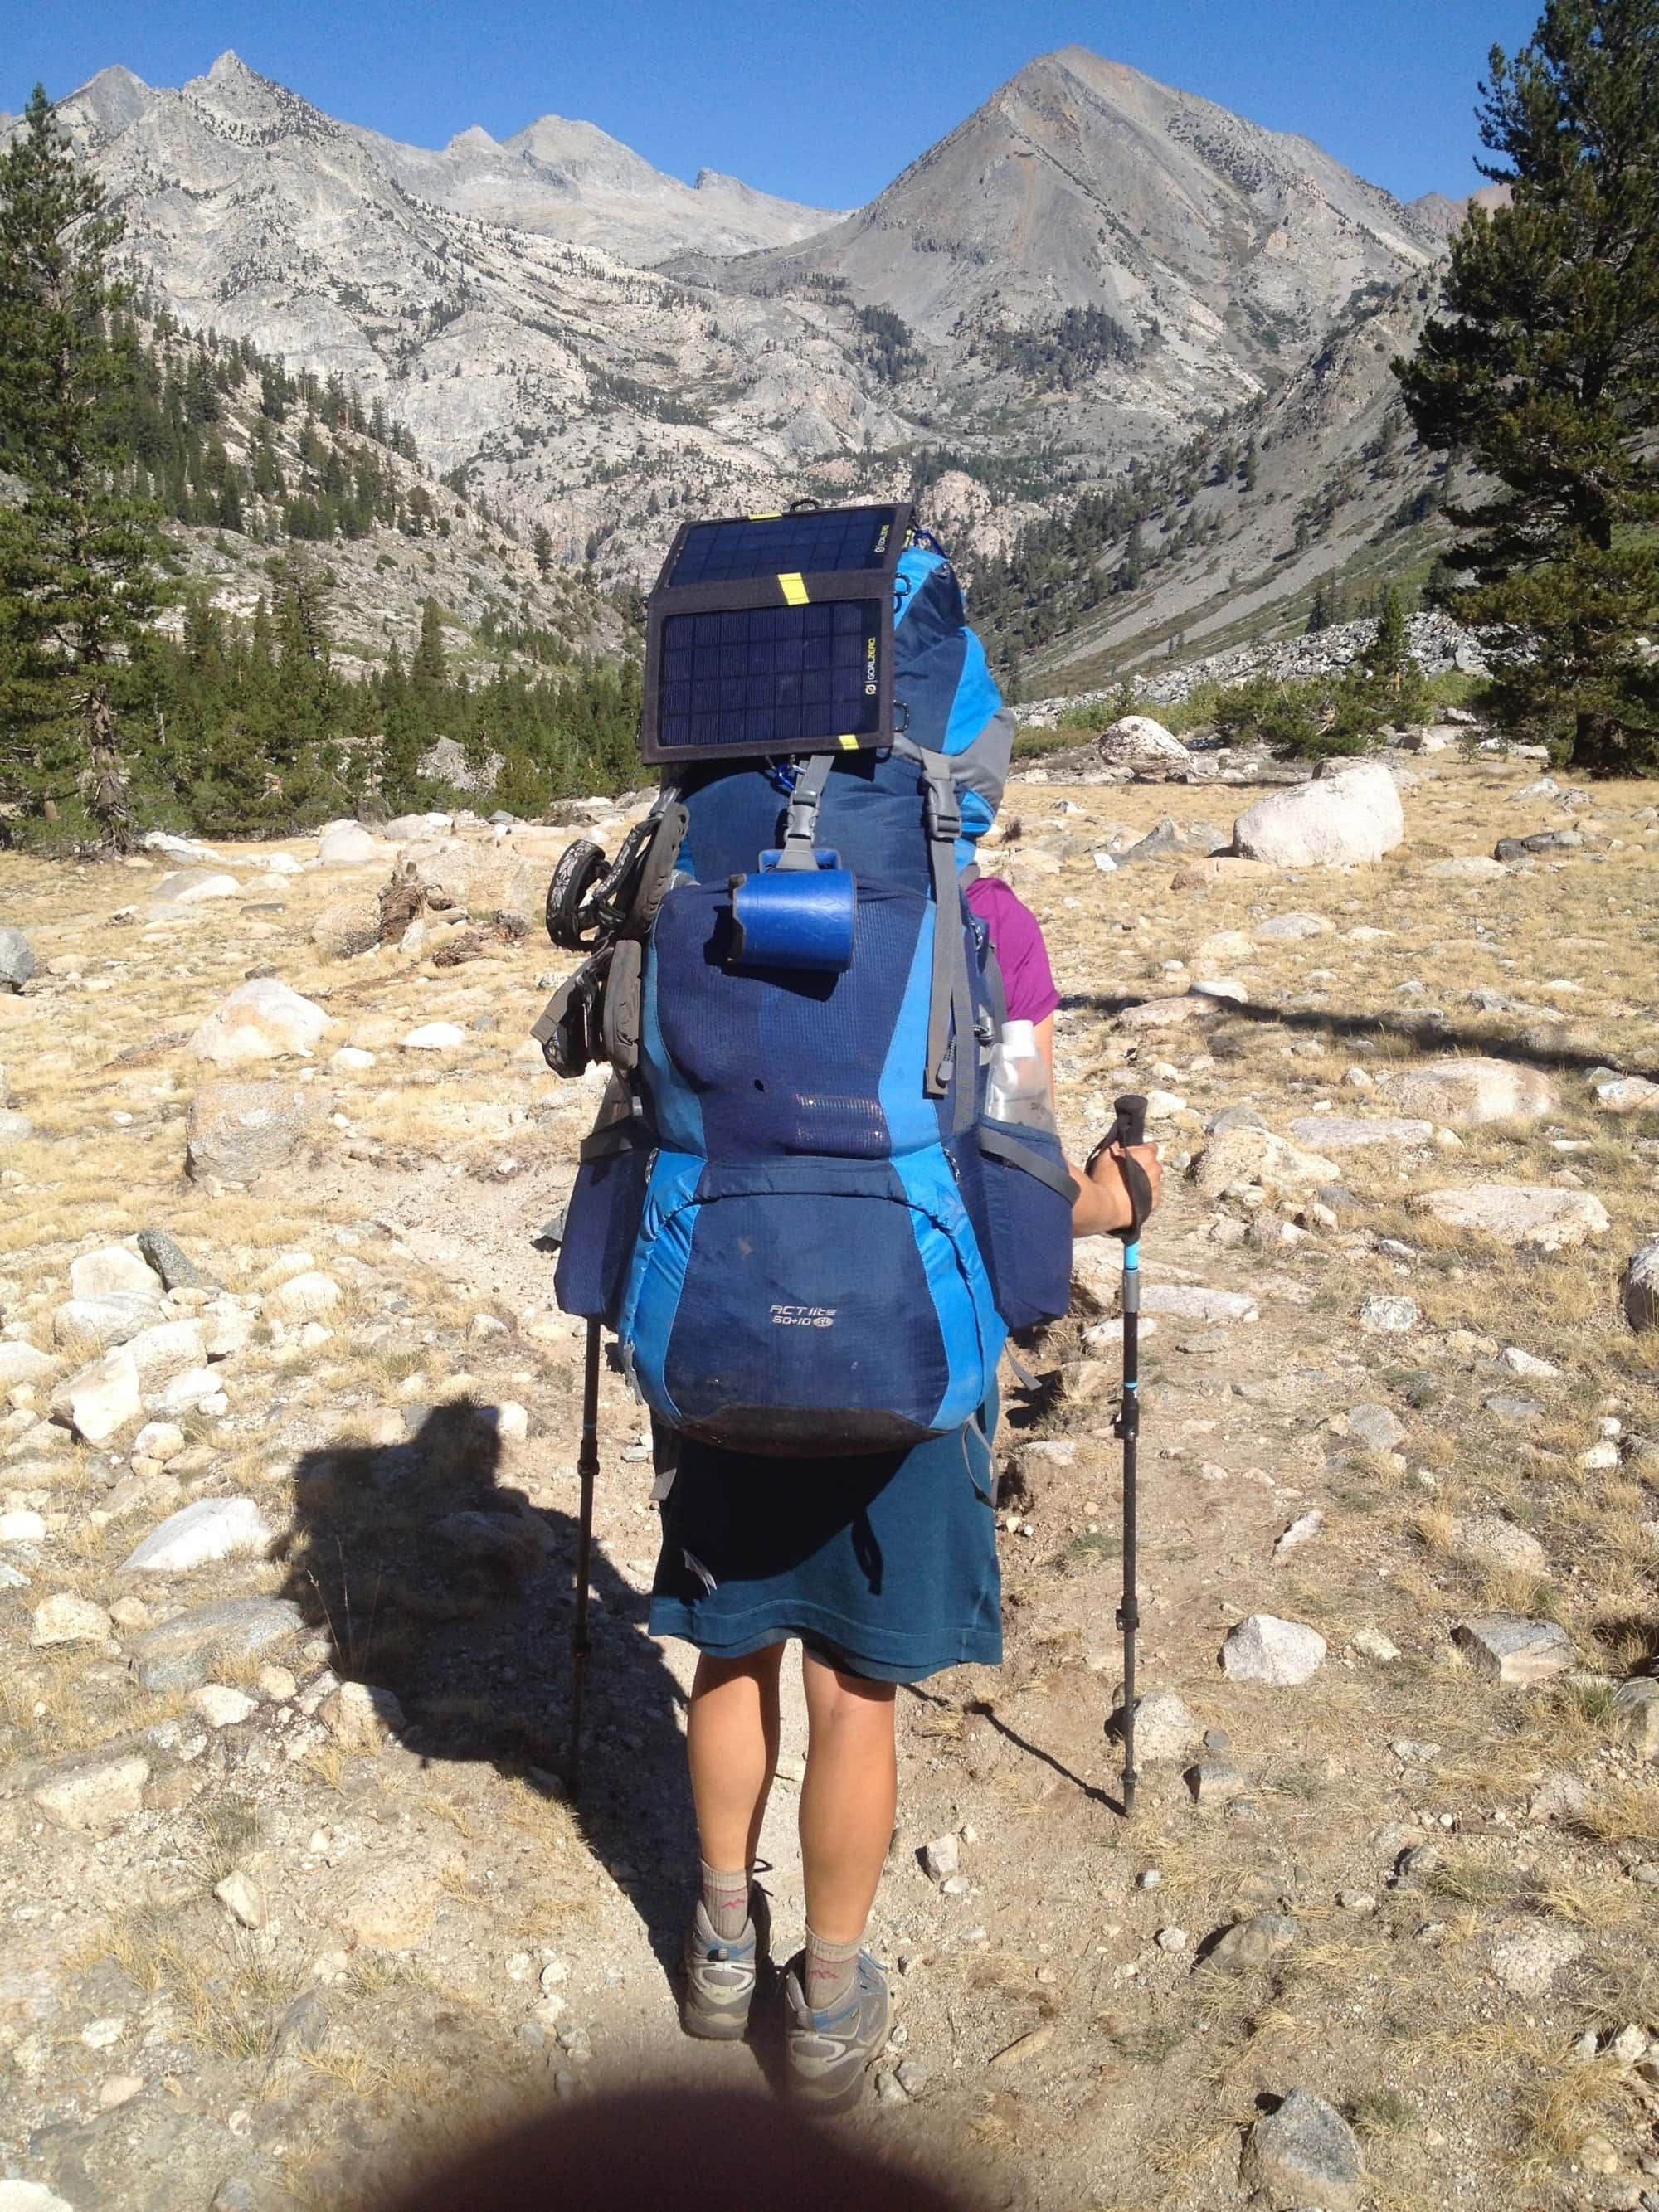 How not to pack a backpack for a multi-day trip